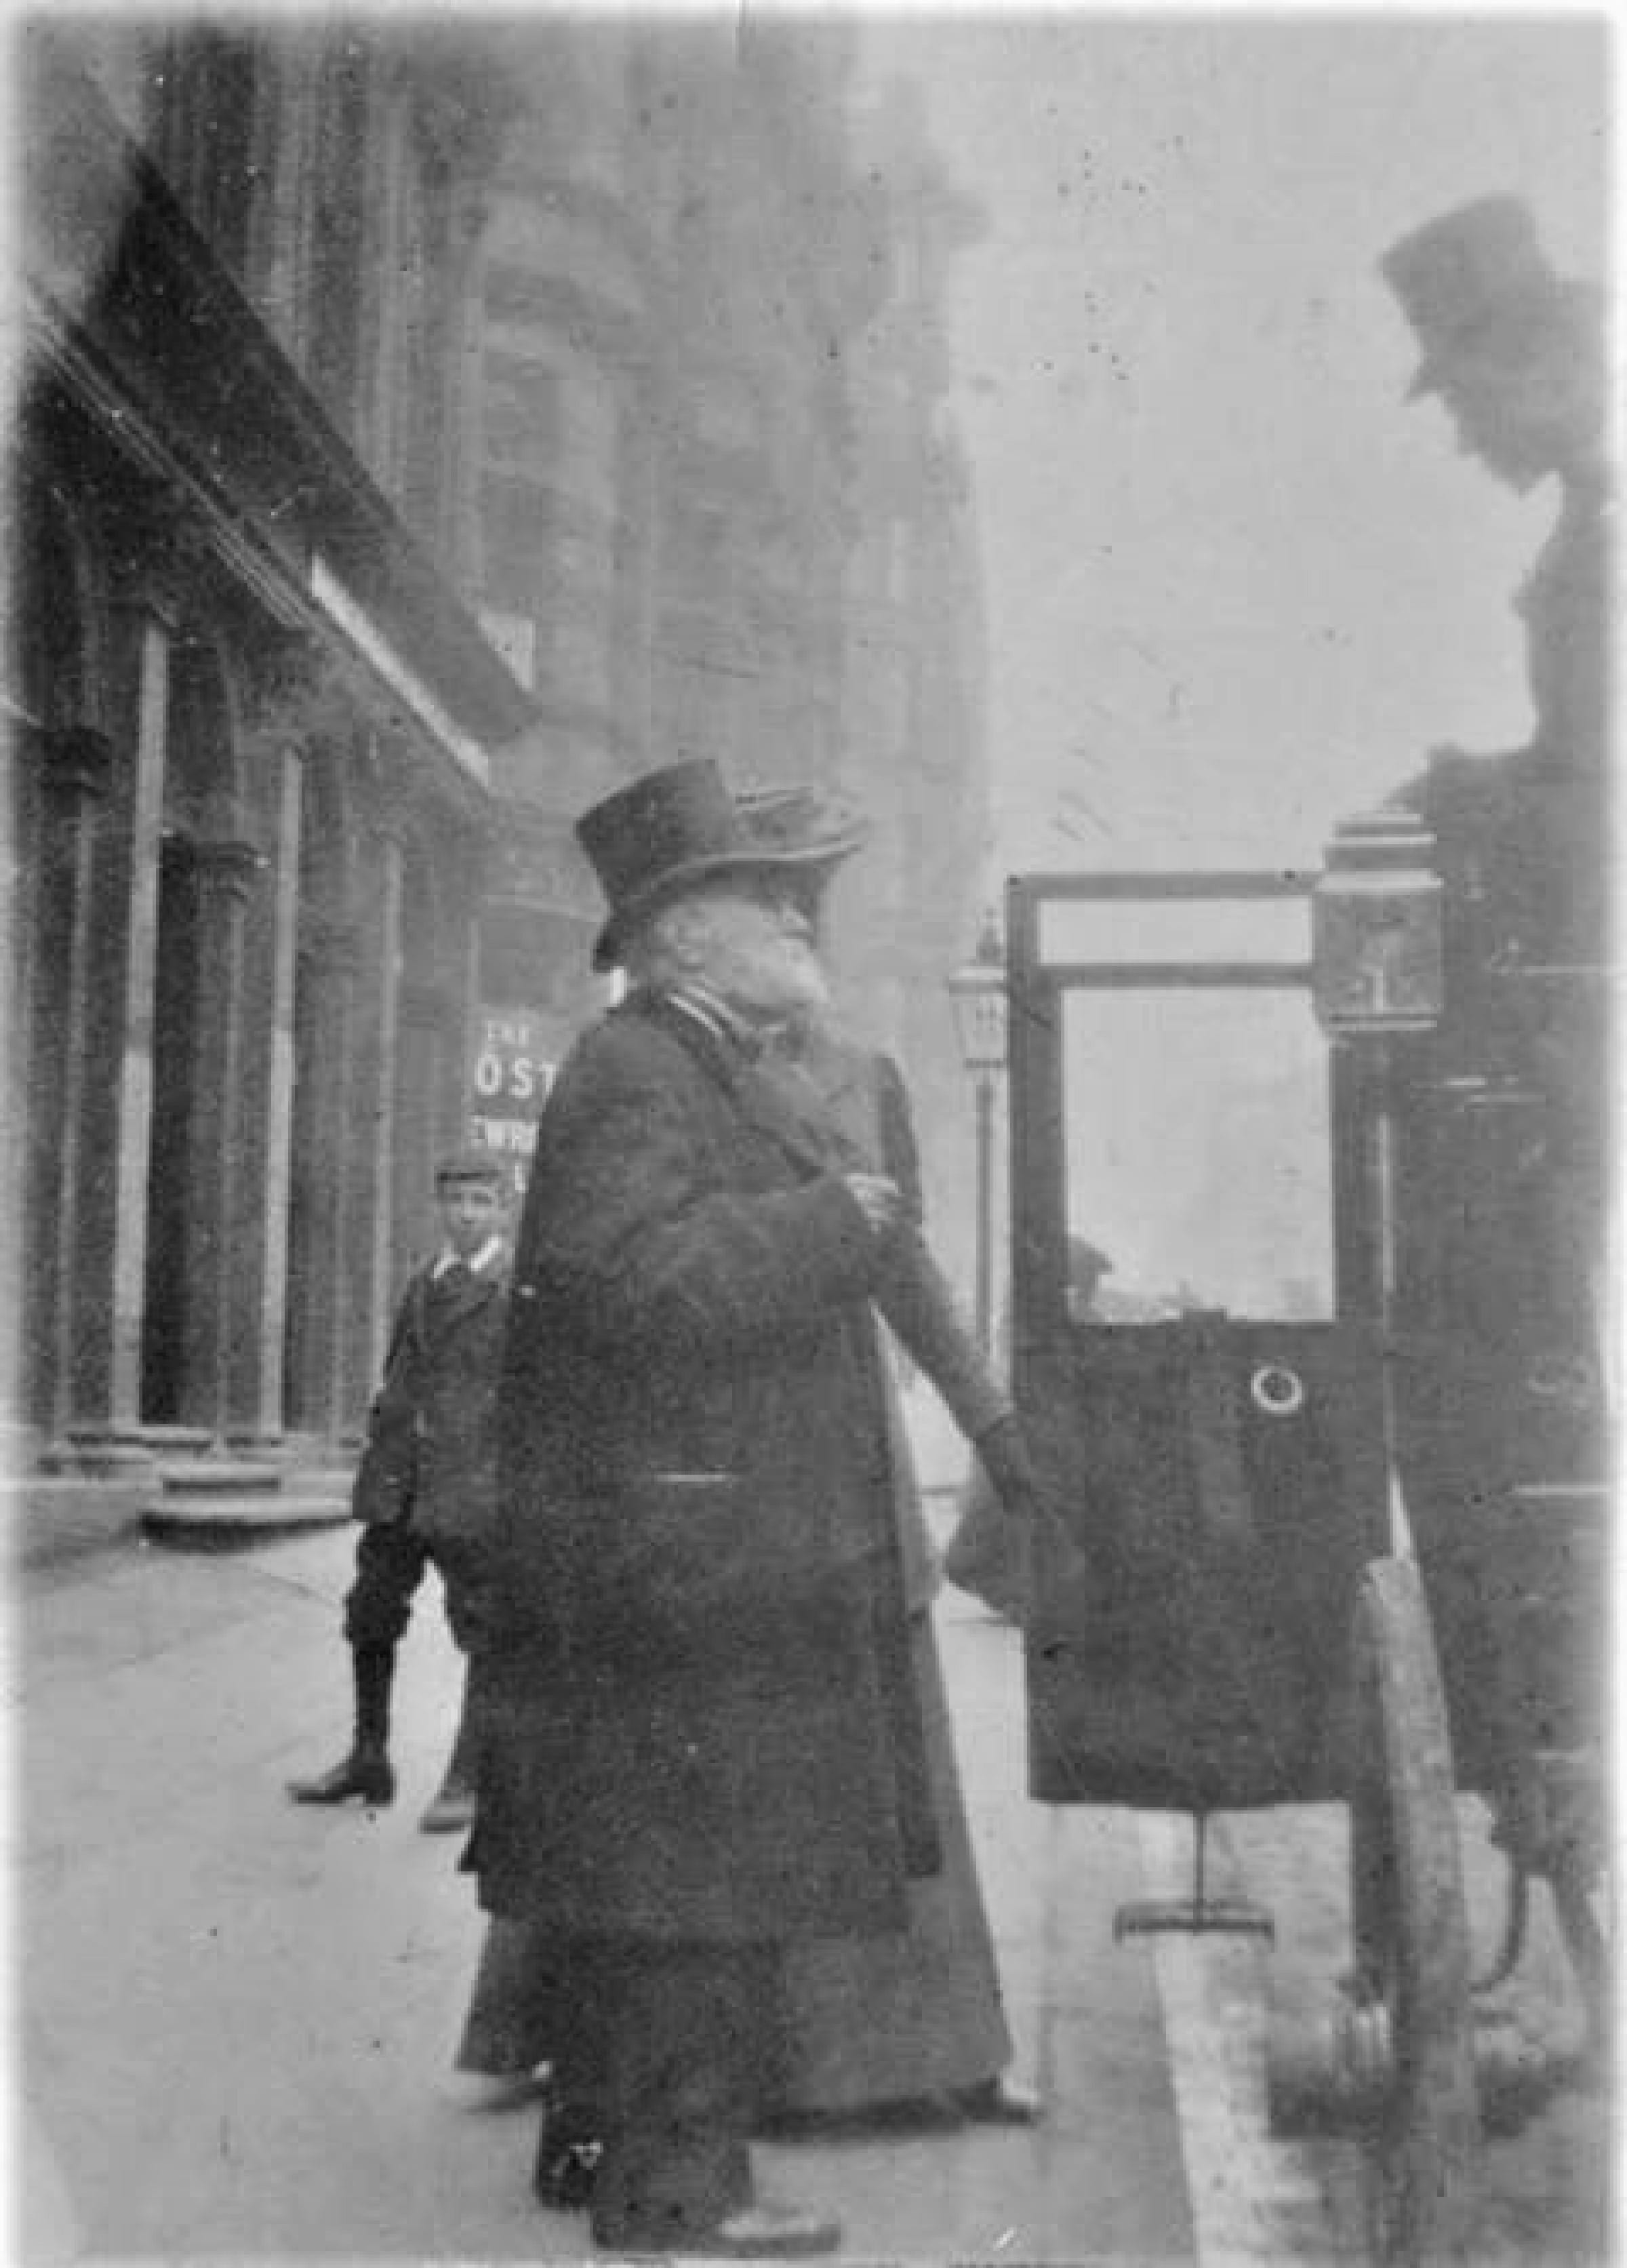 The ghosts of Hope Street (Shipping boss David MacBrayne steps into his carriage outside his Hope Street HQ (Picture: John Kemplen))